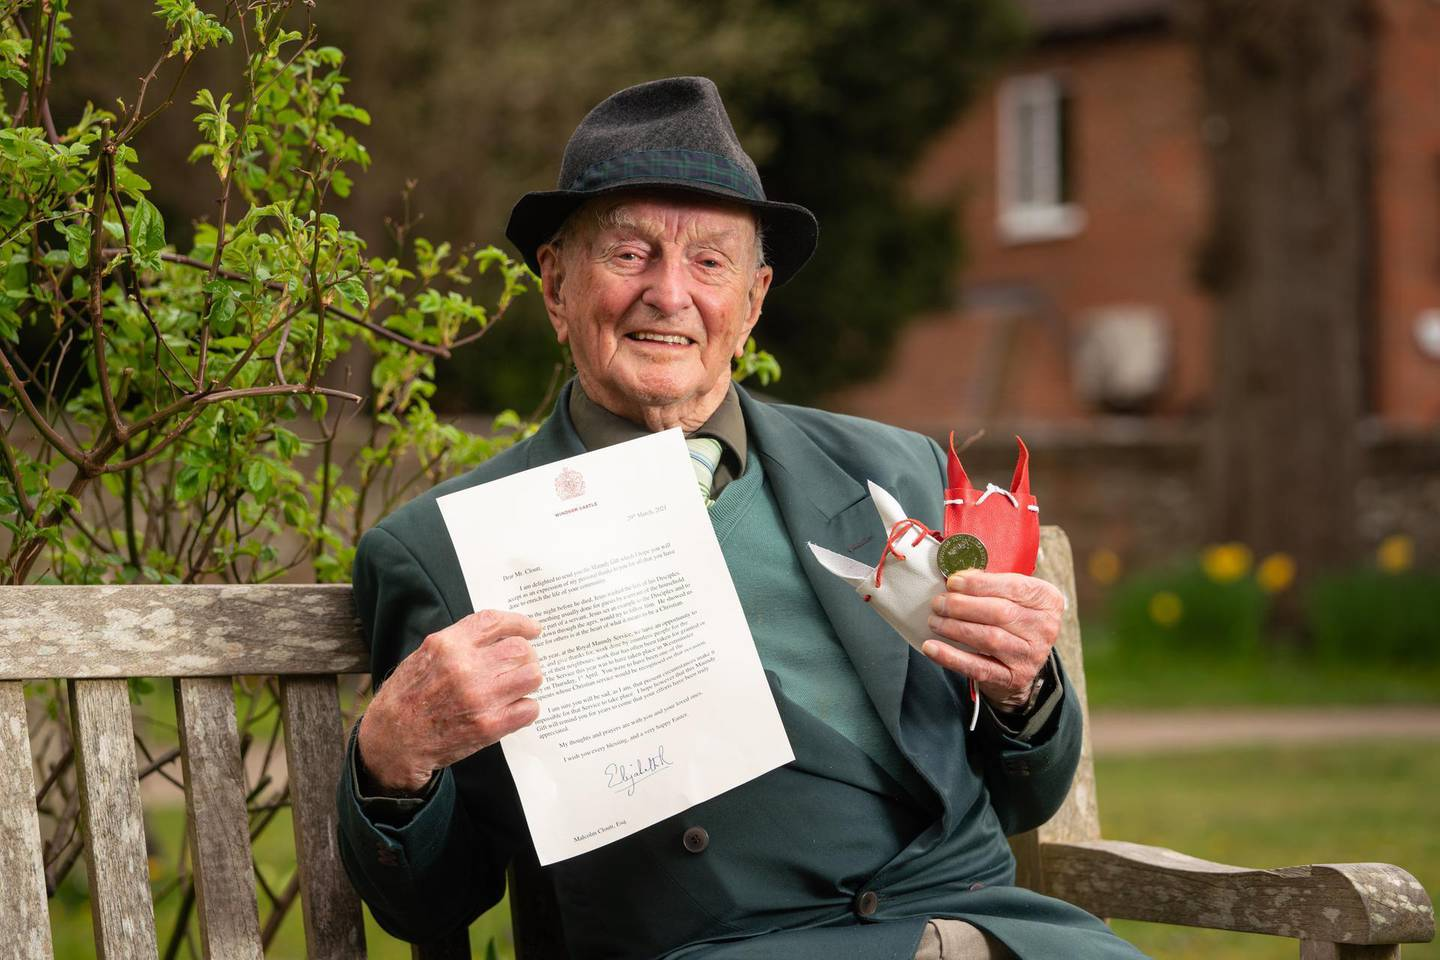 PRINCES RISBOROUGH, UNITED KINGDOM - MARCH 31: In this handout photo provided by Buckingham Palace, Malcolm Cloutt from Princes Risborough, Buckinghamshire, a veteran Second World War RAF pilot who served in Europe and Burma and turned 100 last year, and who is among this years recipients of Maundy money,  poses for a photo on March 31, 202 in Princes Risborough, United Kingdom. This year there are 190 Royal Maundy recipients who have been recognised by their dioceses for their outstanding contributions to their local church and community life. Queen Elizabeth II has written to those she would have presented with symbolic coins during the annual Royal Maundy service, but who instead have received the gift by post after the event was cancelled for the second year running due to coronavirus restrictions. (Photo by Dominic Lipinski -Buckingham Palace via Getty Images)